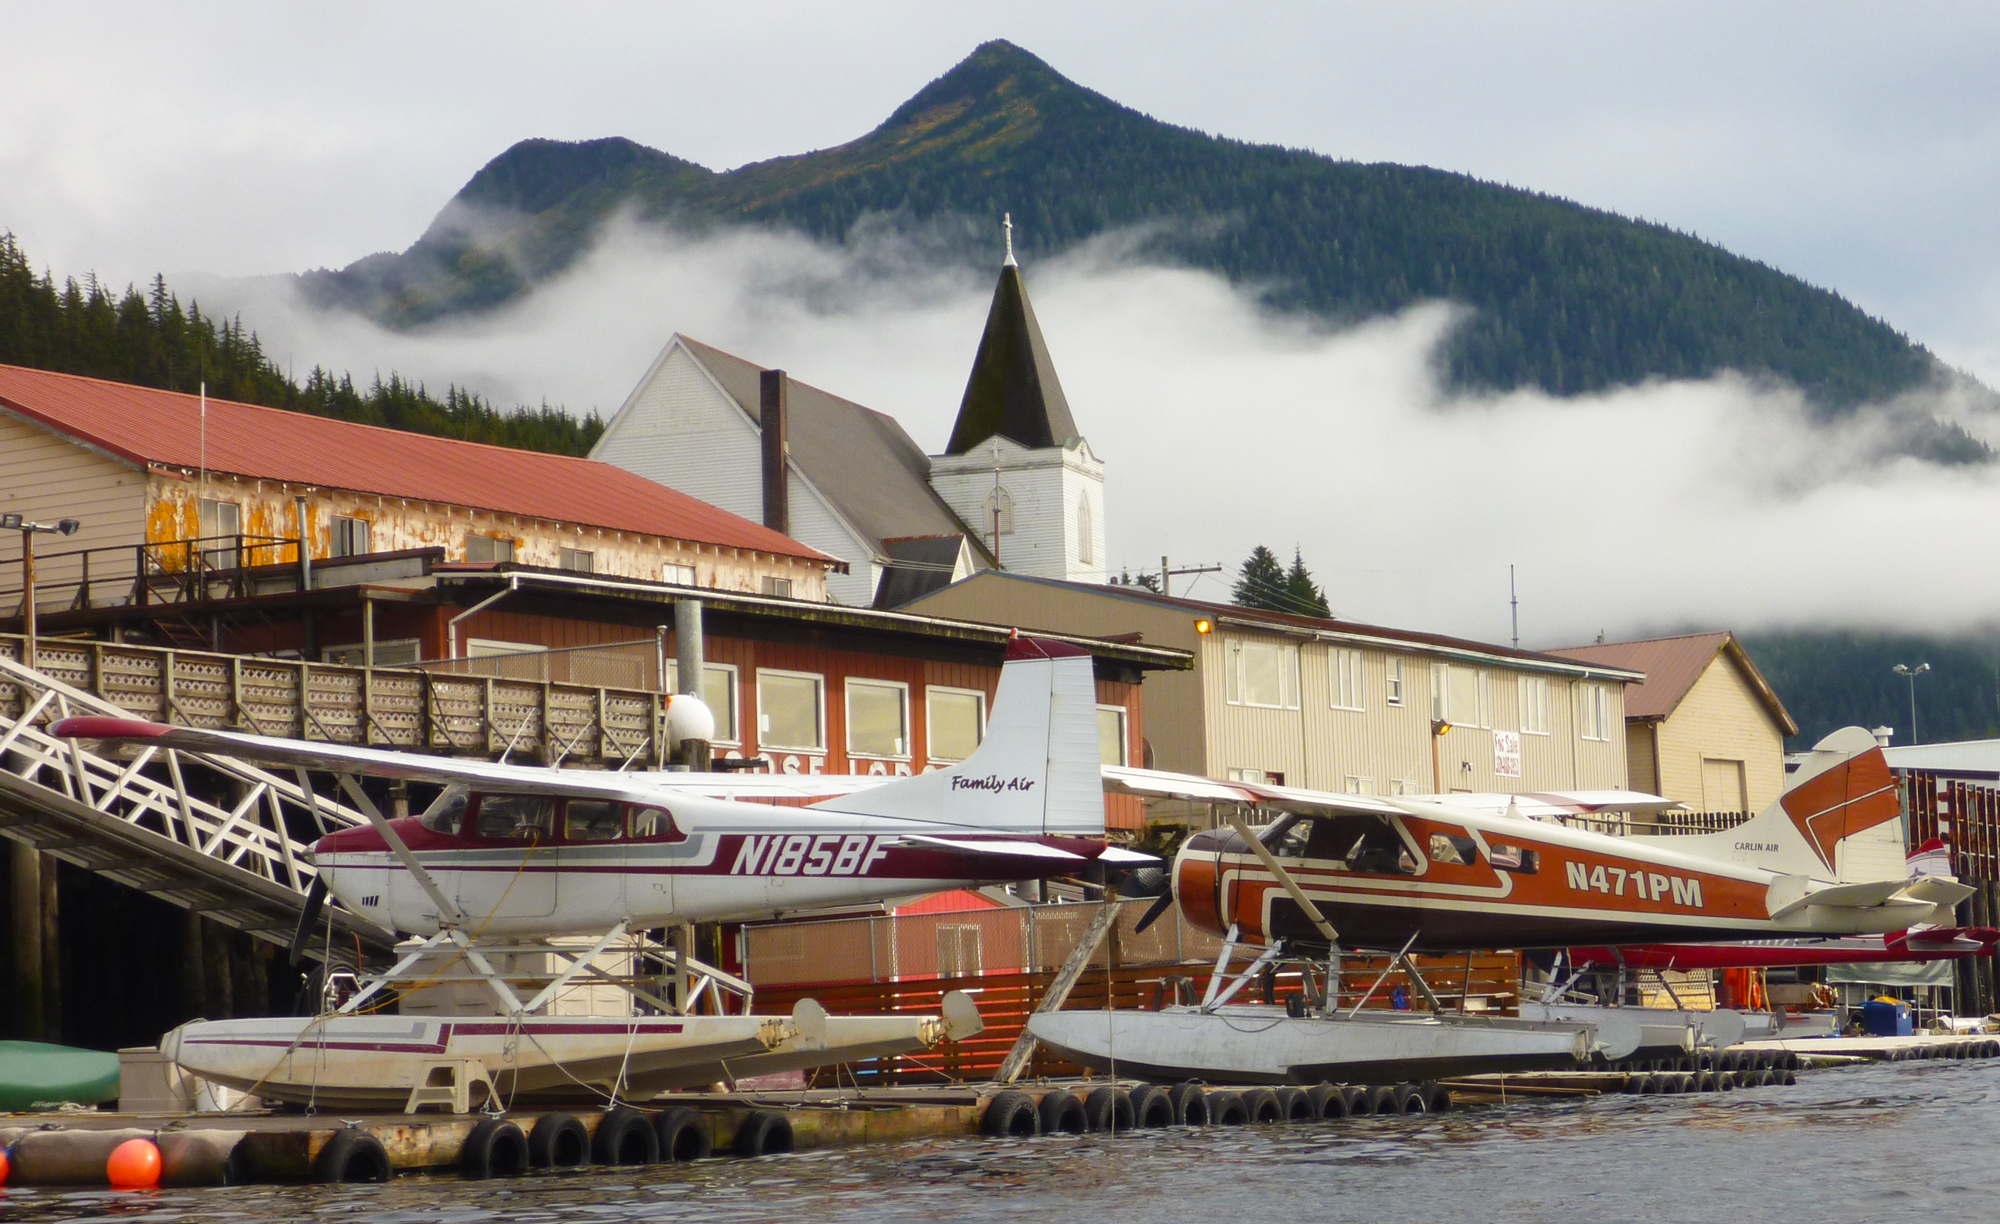 Family Air and Carlin Air seaplanes at their dock in downtown Ketchikan.